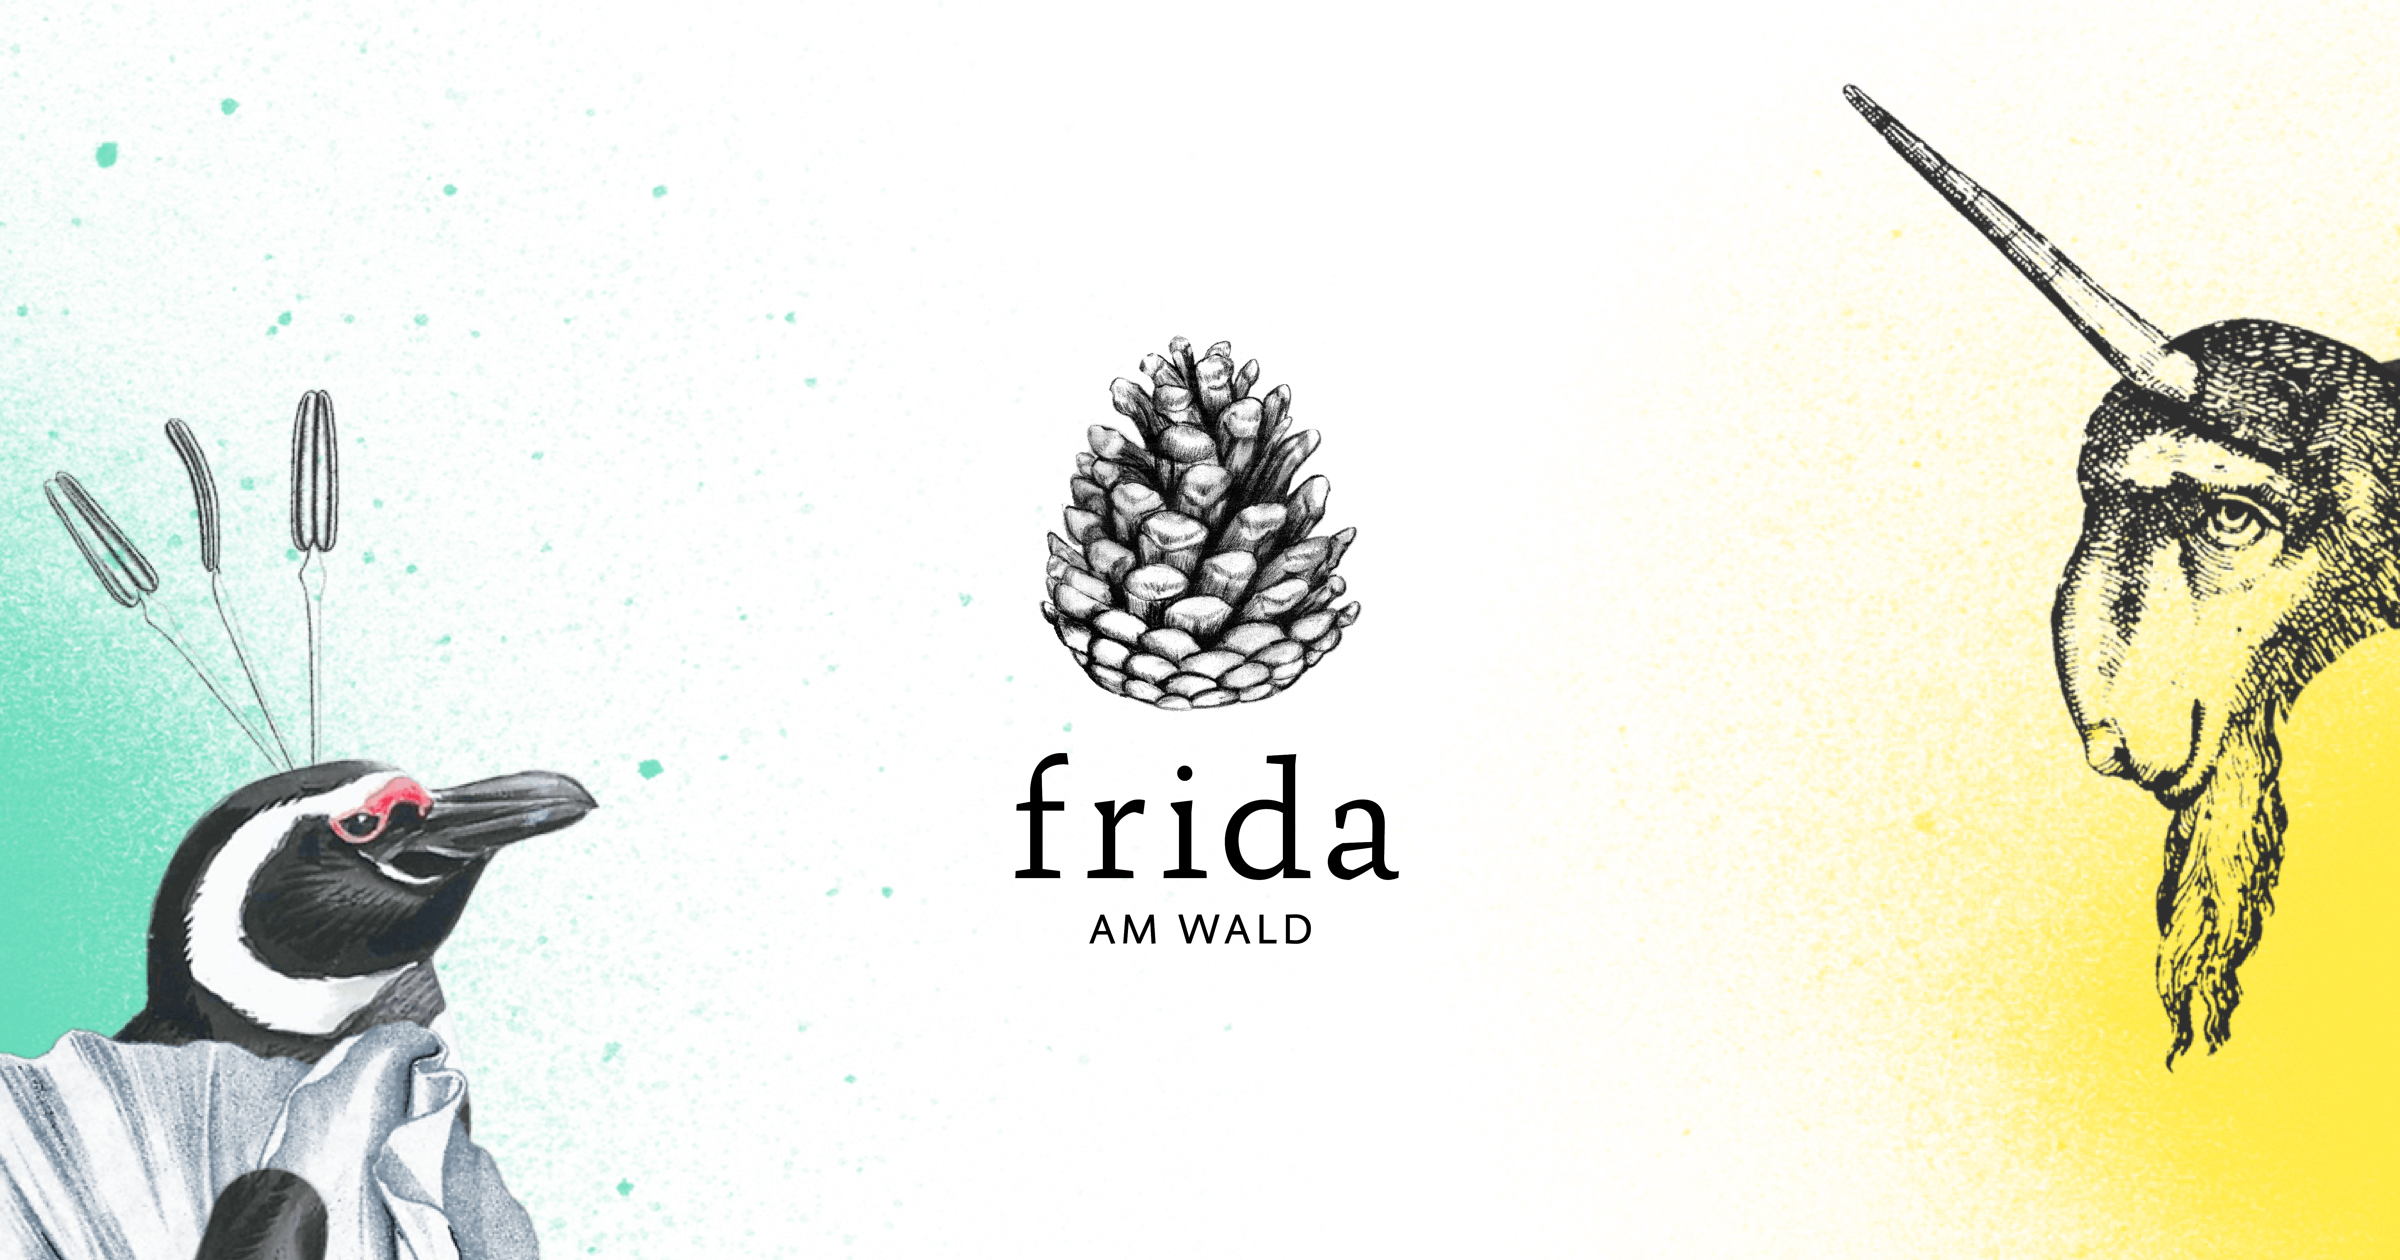 Hotel Frida Am Wald Frida